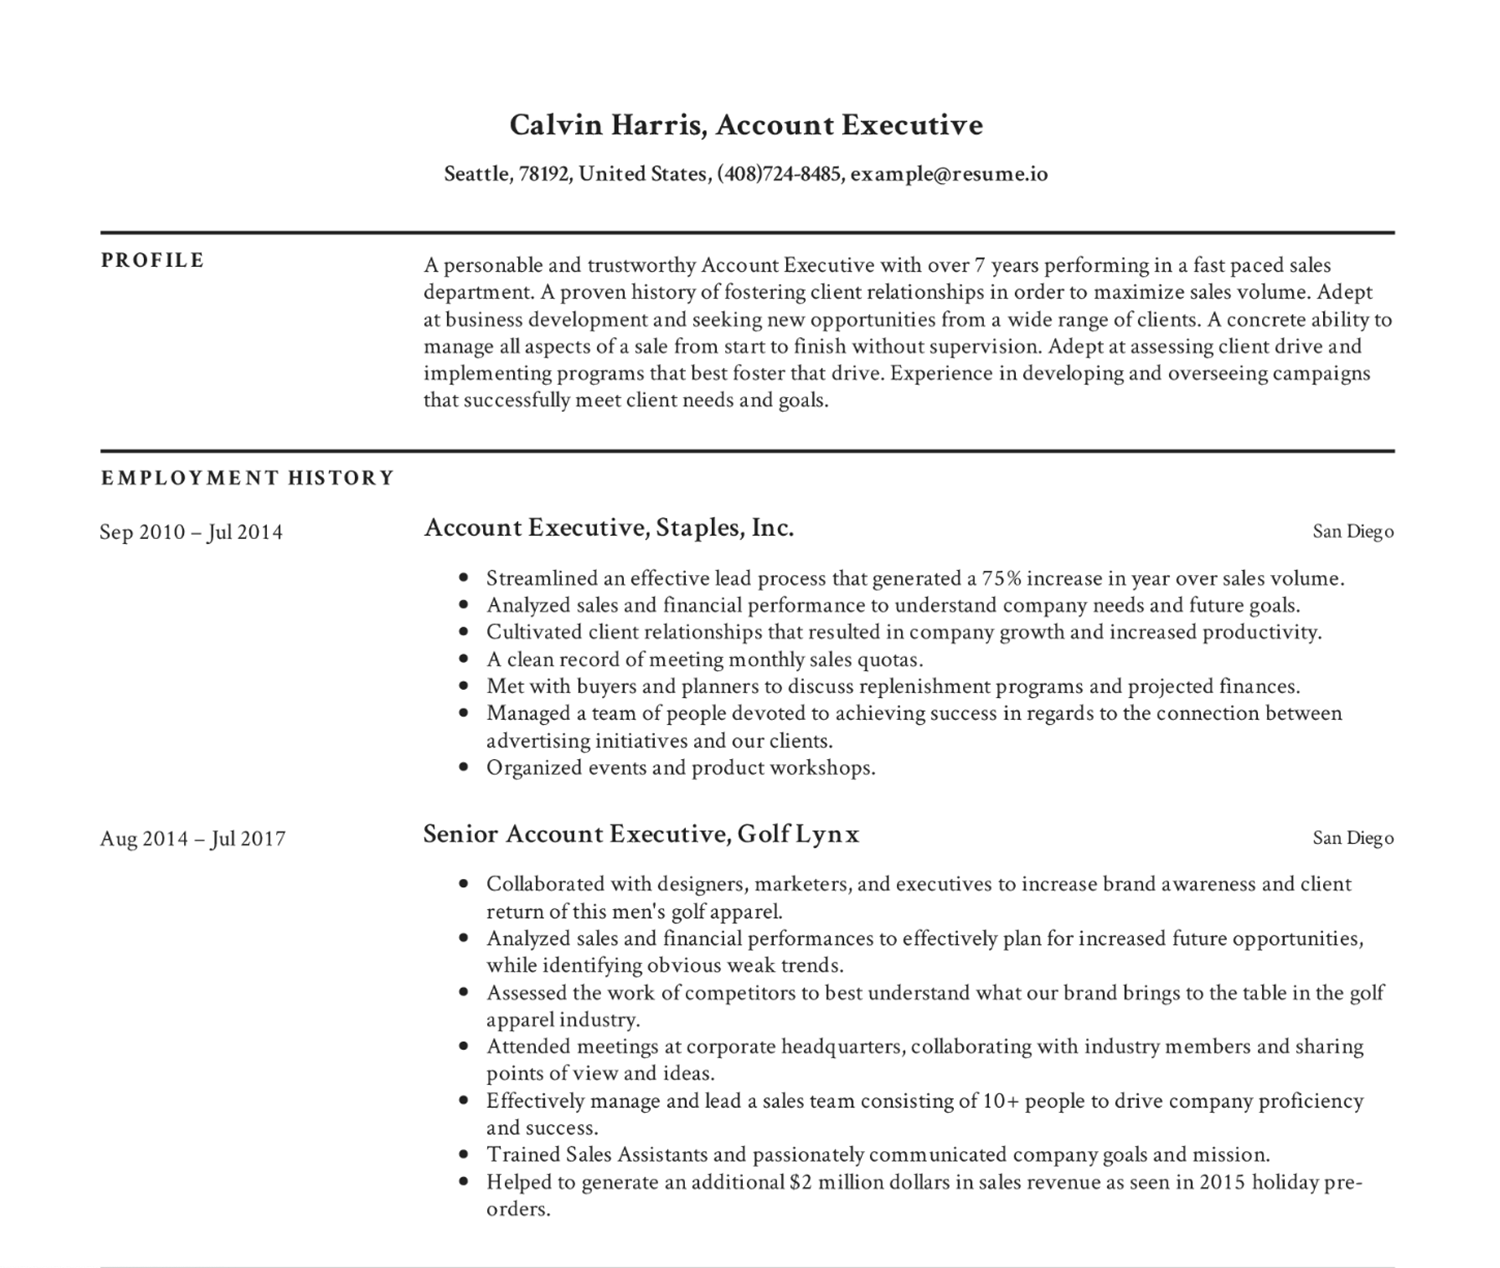 Heres Why You Should Not Download Resume Examples From The Internet